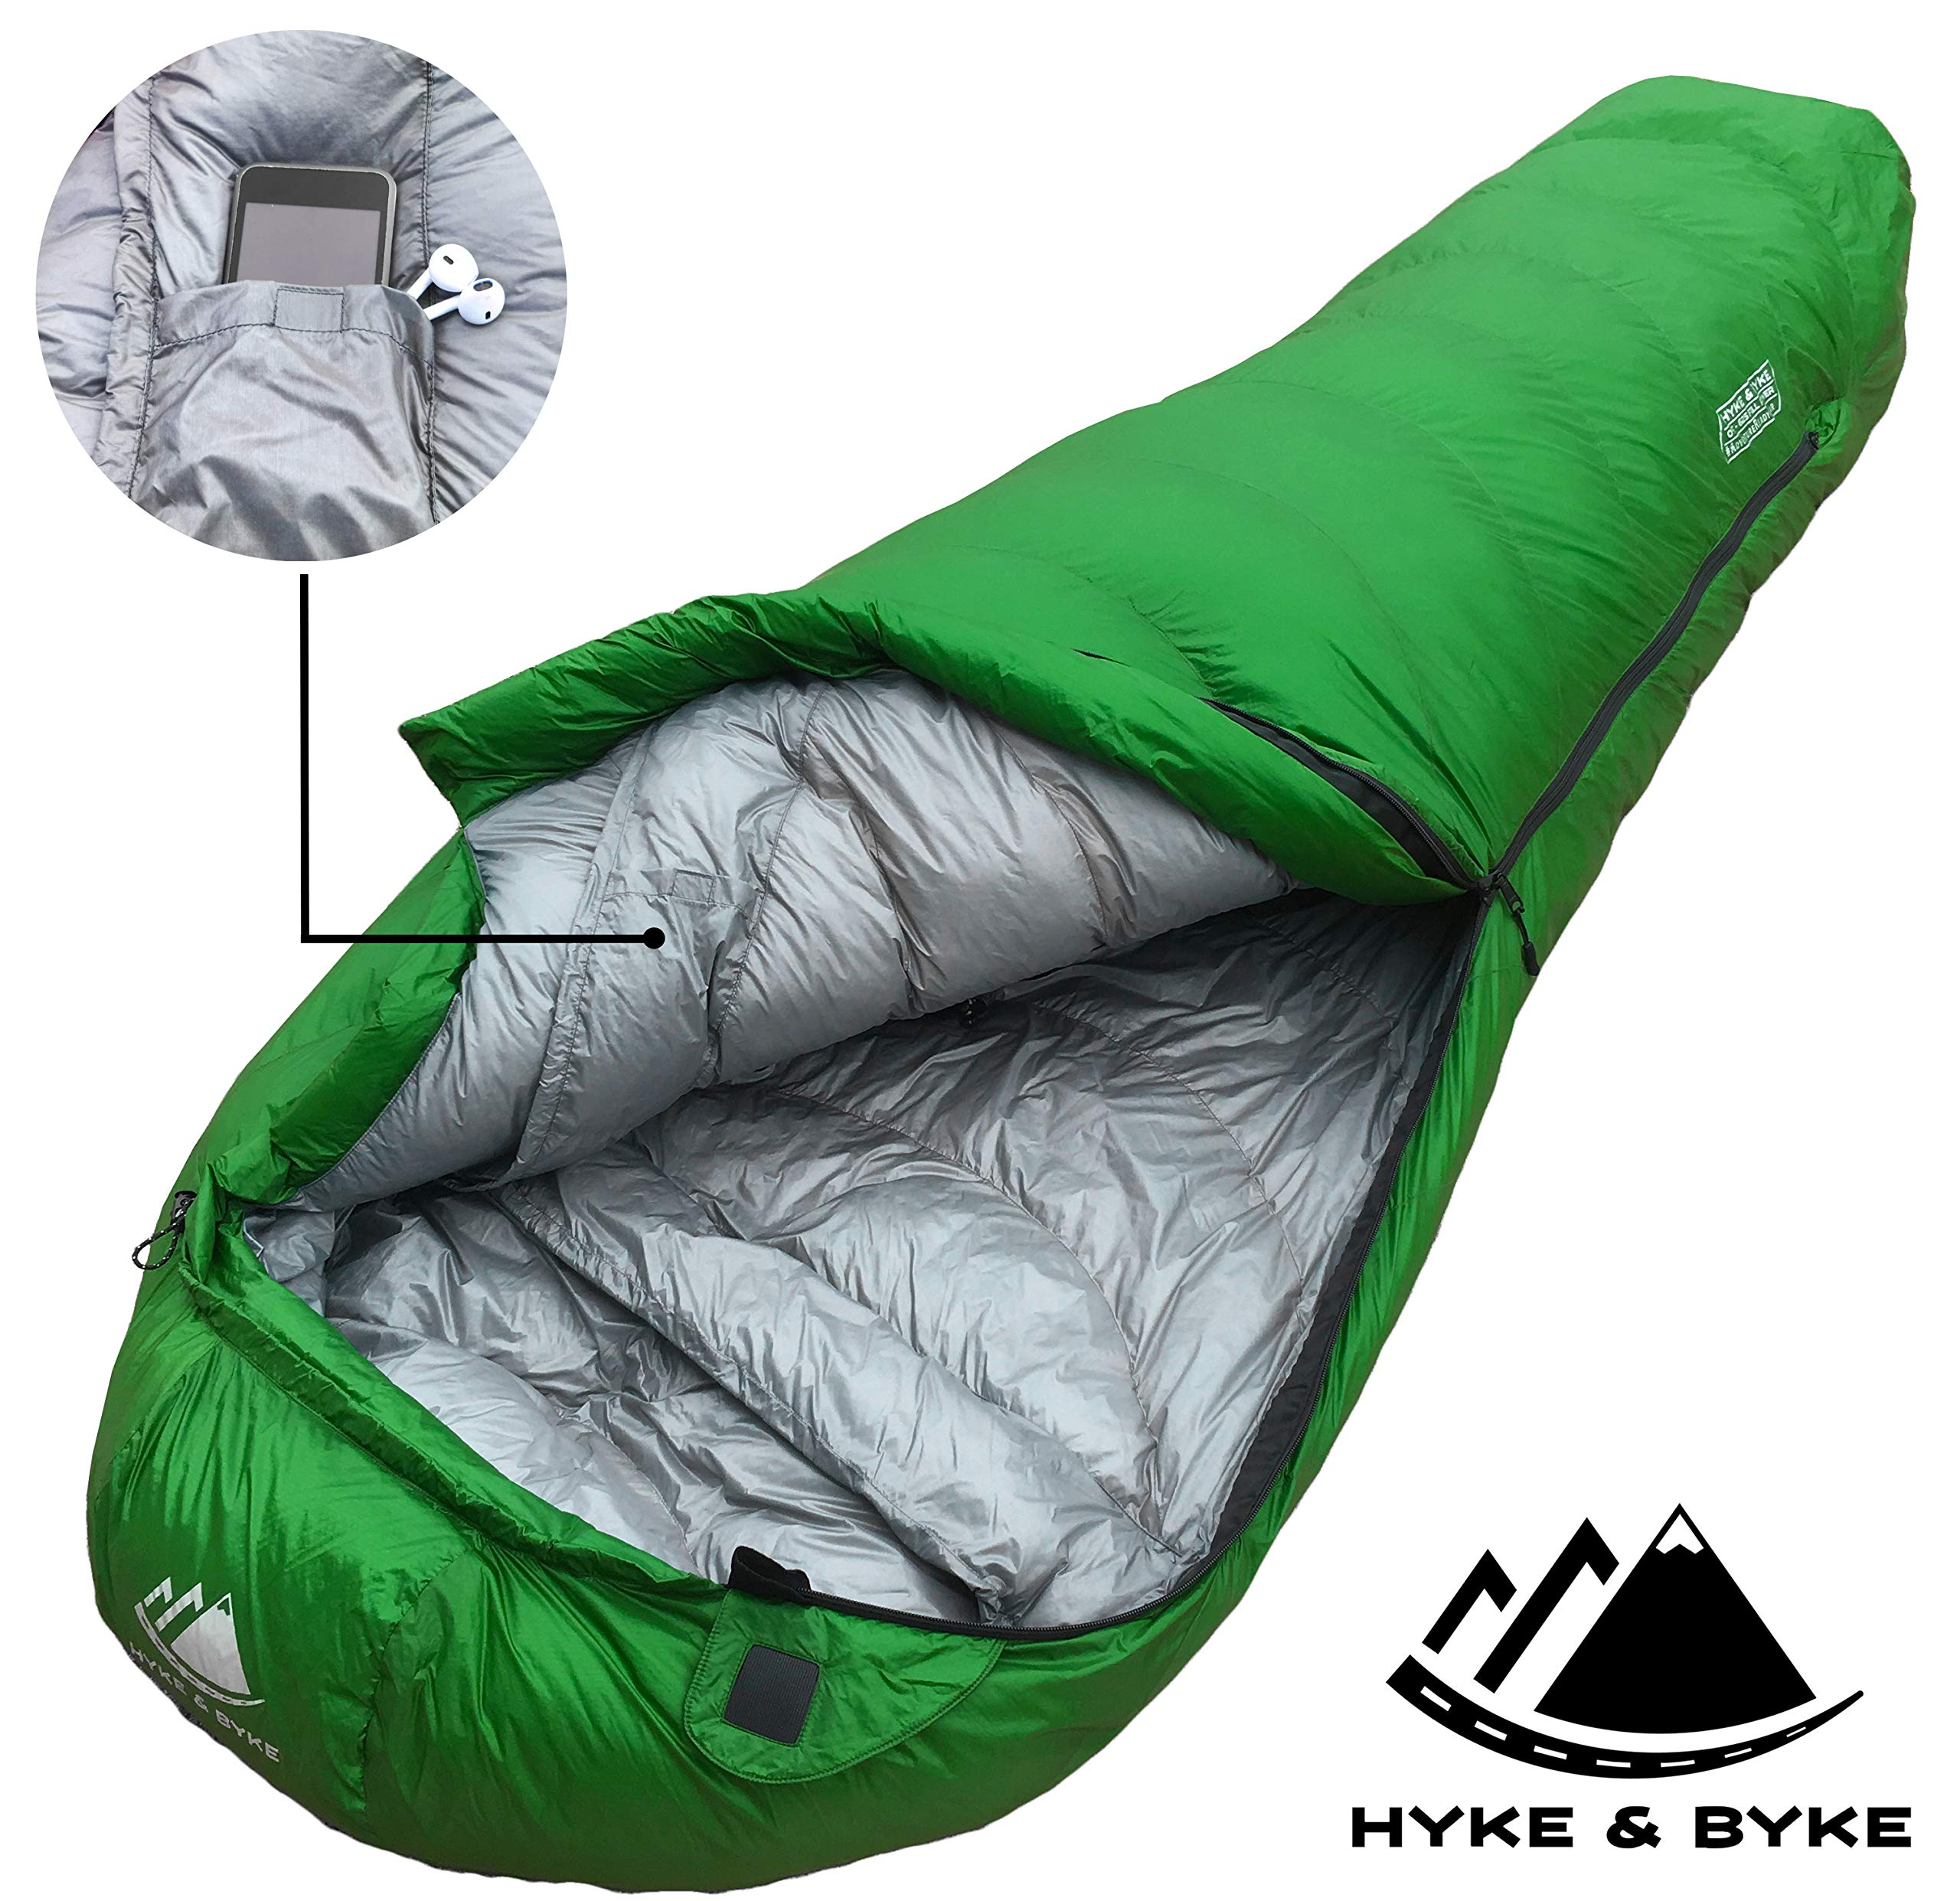 0 Degree Backpacking Sleeping Bag - Zero F Ultralight Mummy Bag for Cold Weather, Lightweight Synthetic Goose Down Like 625 Fill Power Bag For Men's and Women's Winter Camping (Forest Green, Regular) 6